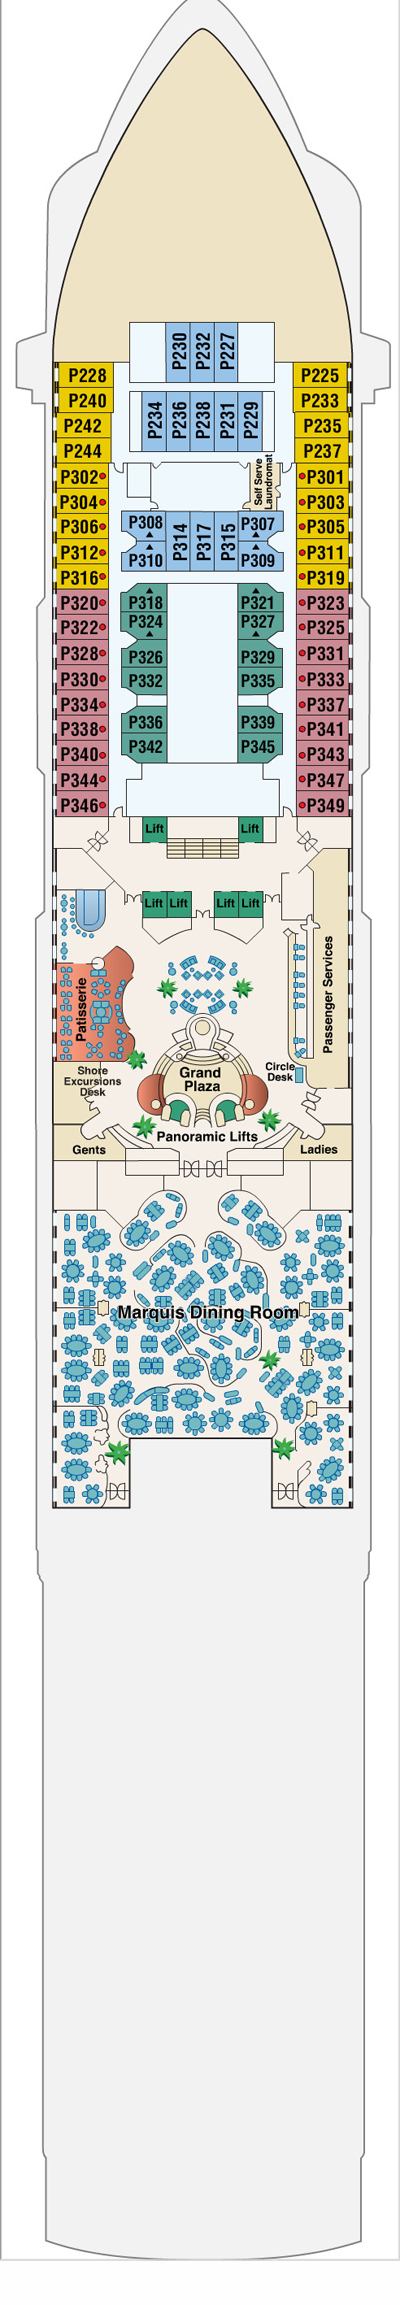 Sun Princess Plaza Deck 5 layout